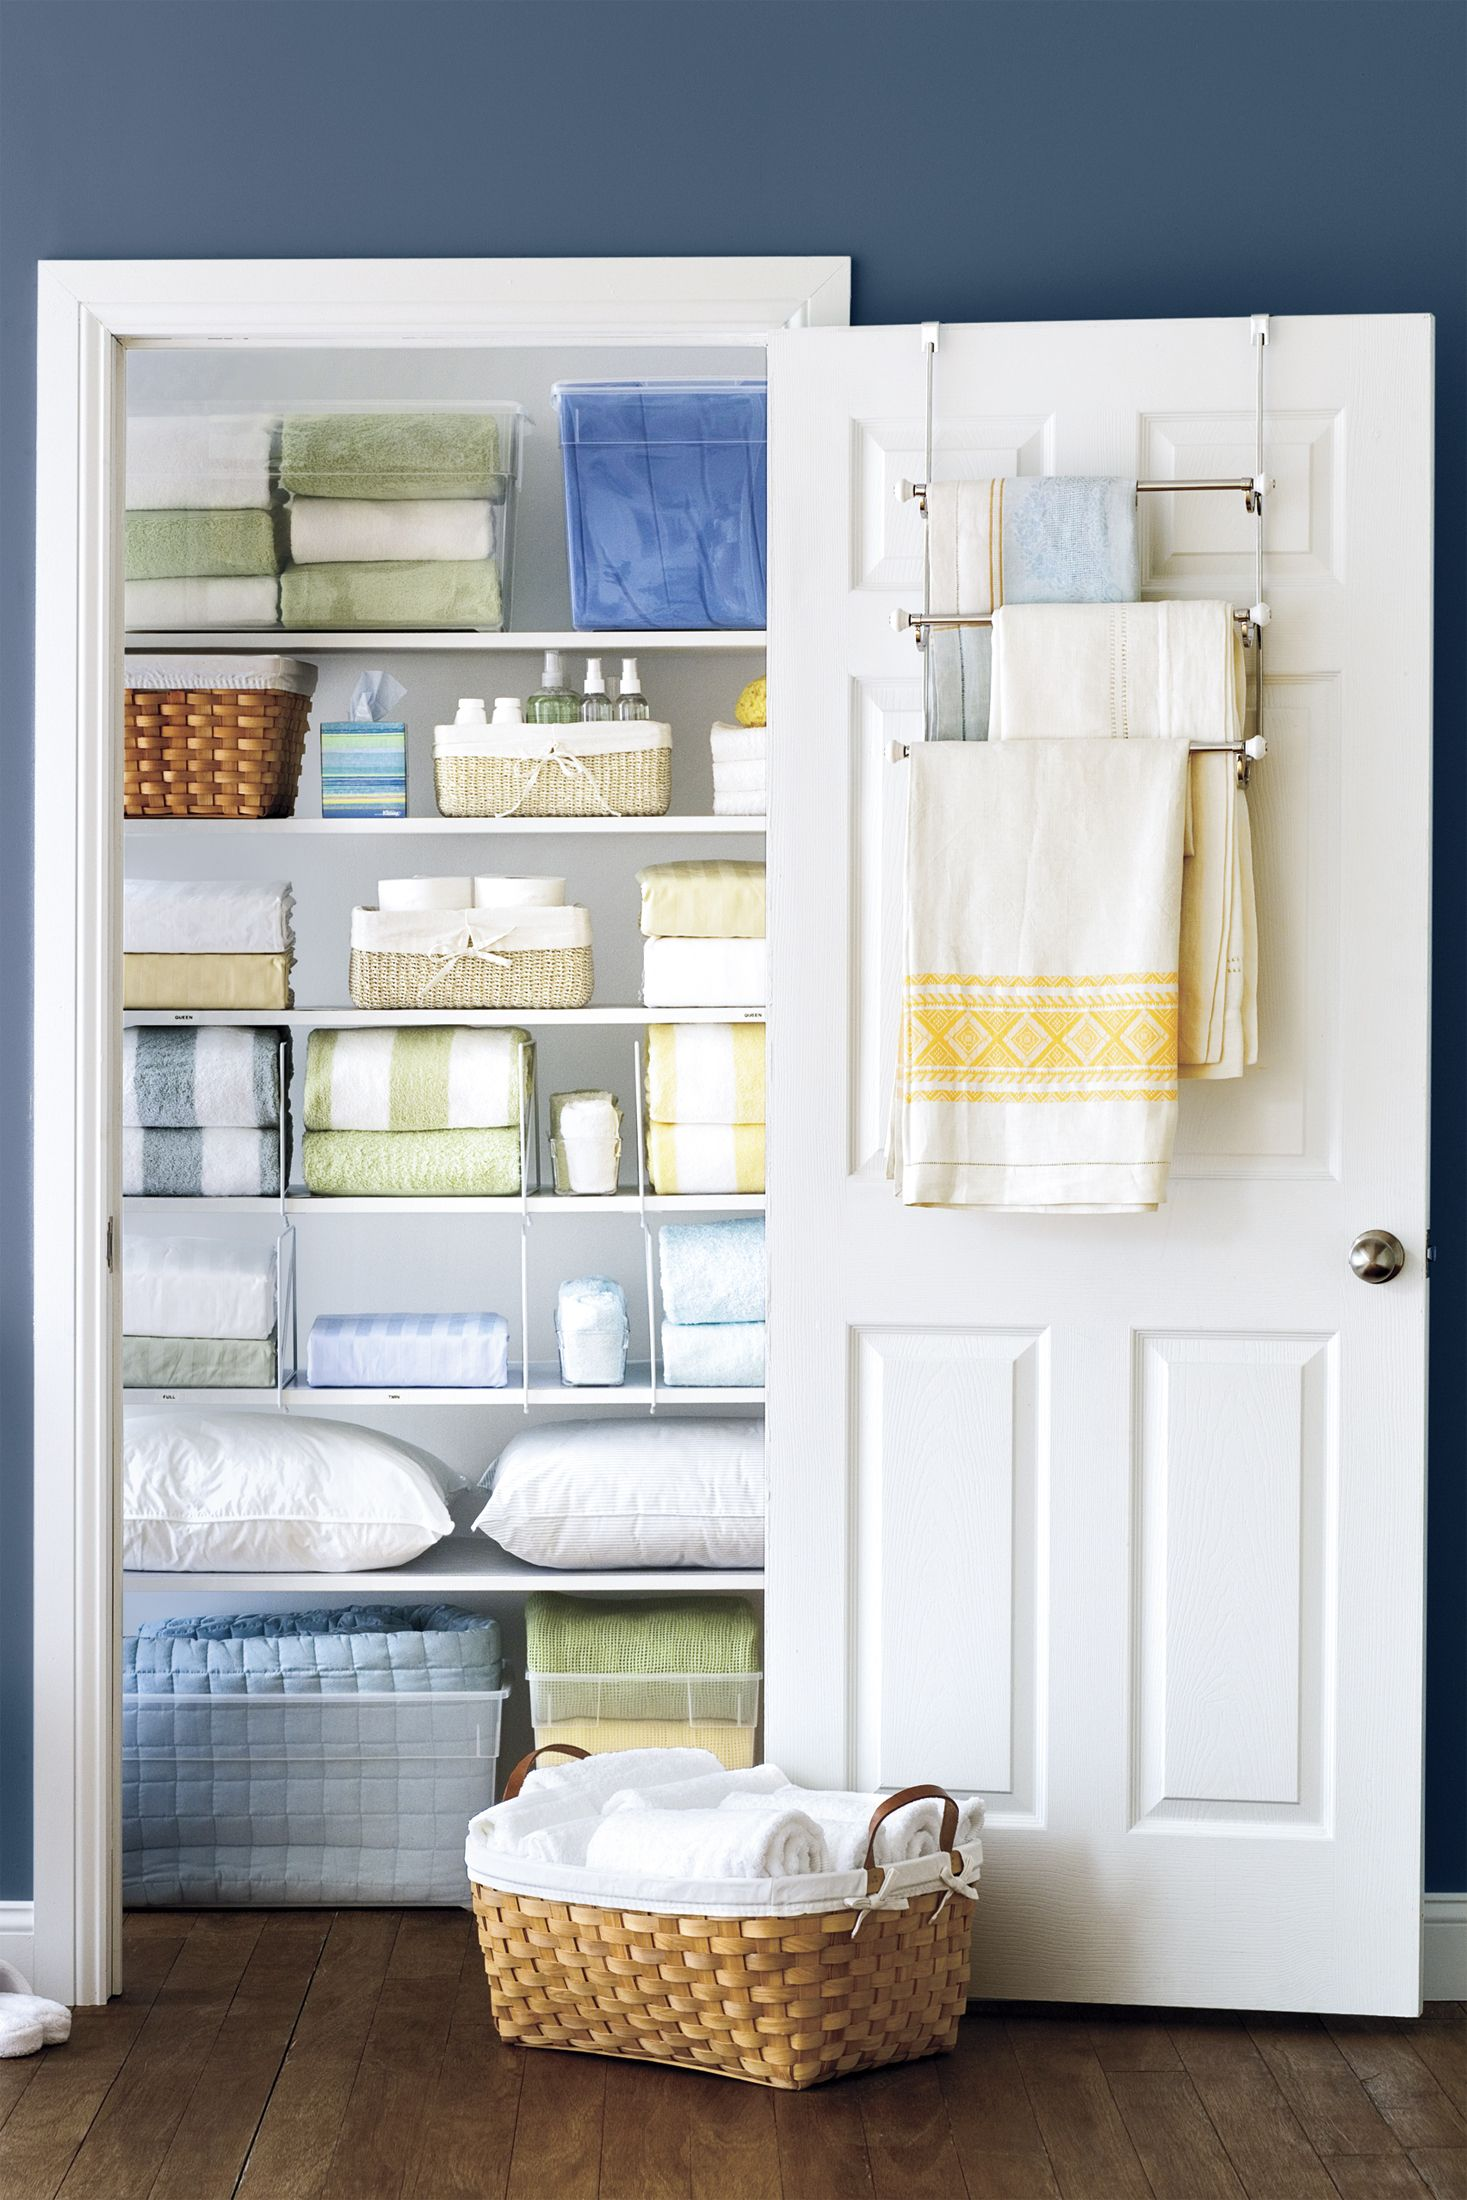 Bathroom Linen Closet Ideas Linen Closet Organization Ideas How To Organize Your Linen Closet